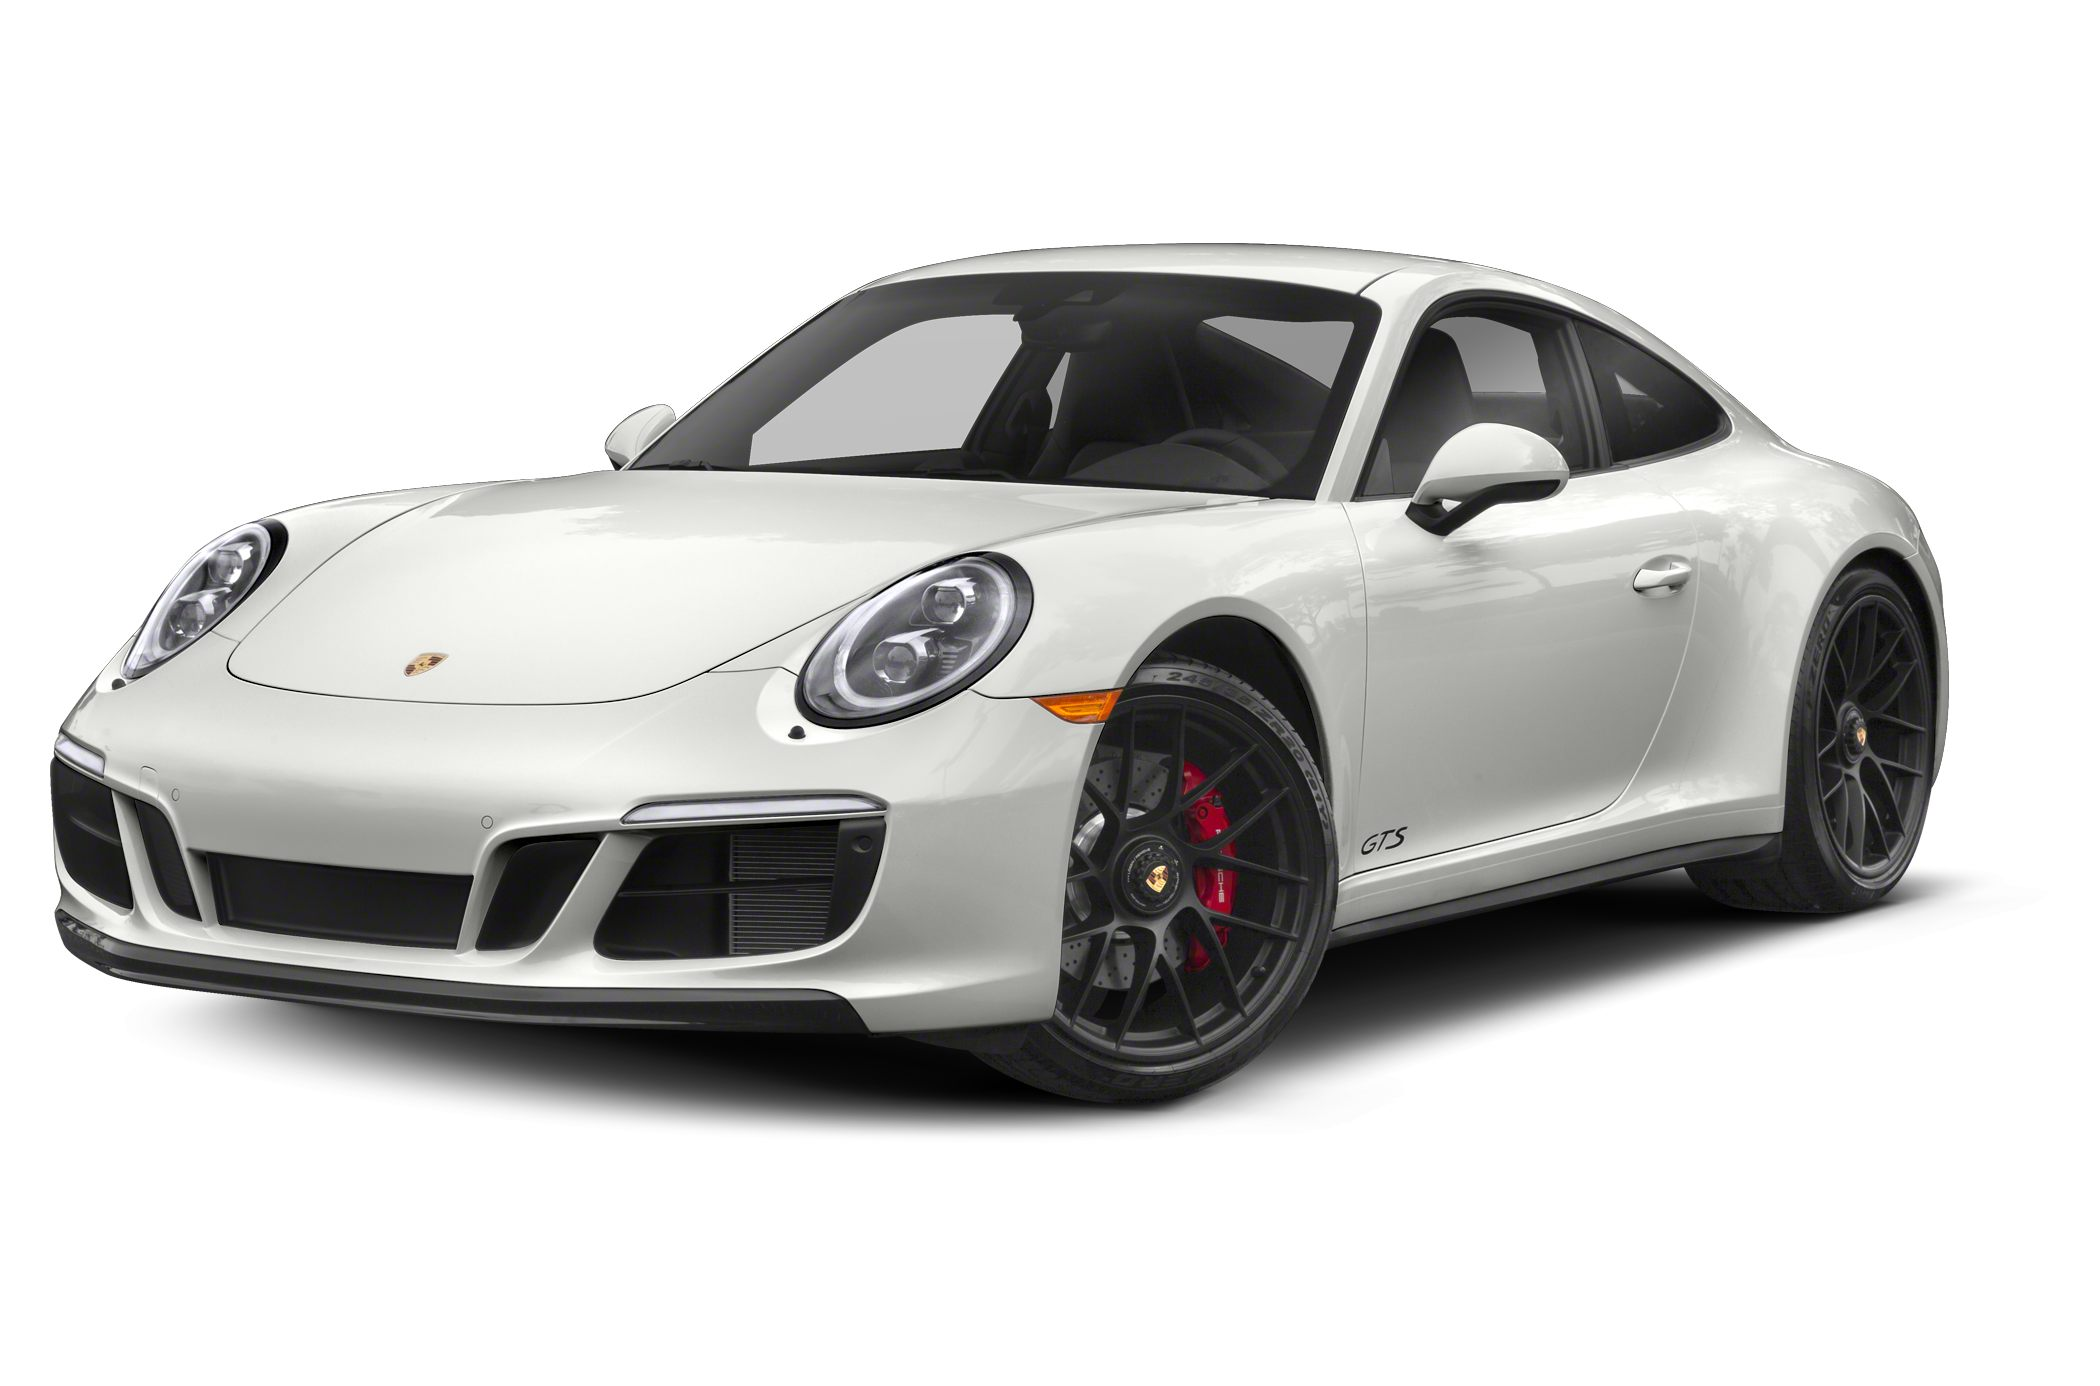 2018 Porsche 911 Carrera 4 Gts 2dr All Wheel Drive Coupe Pricing And Options